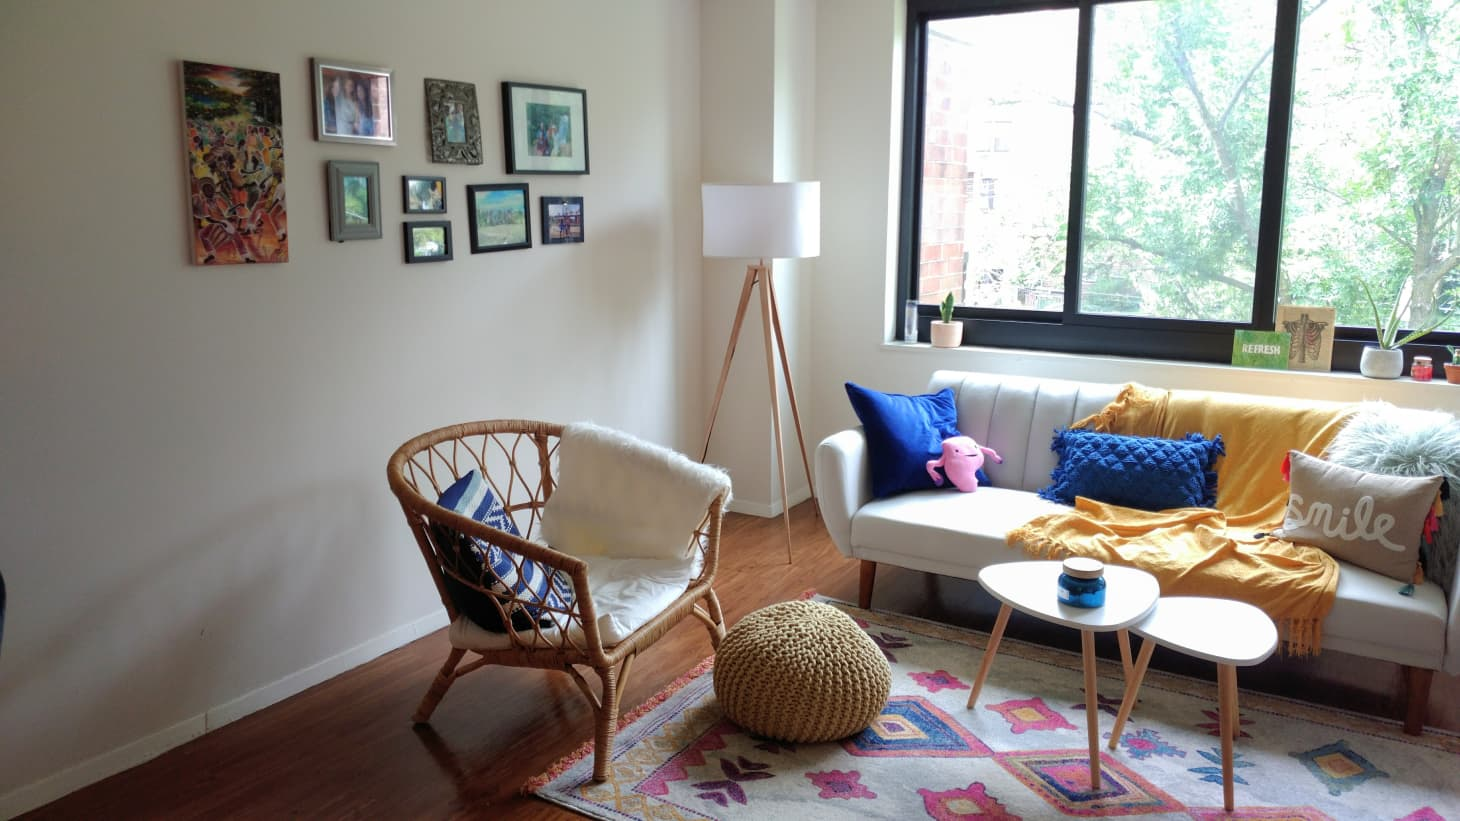 Cute and Colorful Small Studio Apartment Tour   Apartment ...